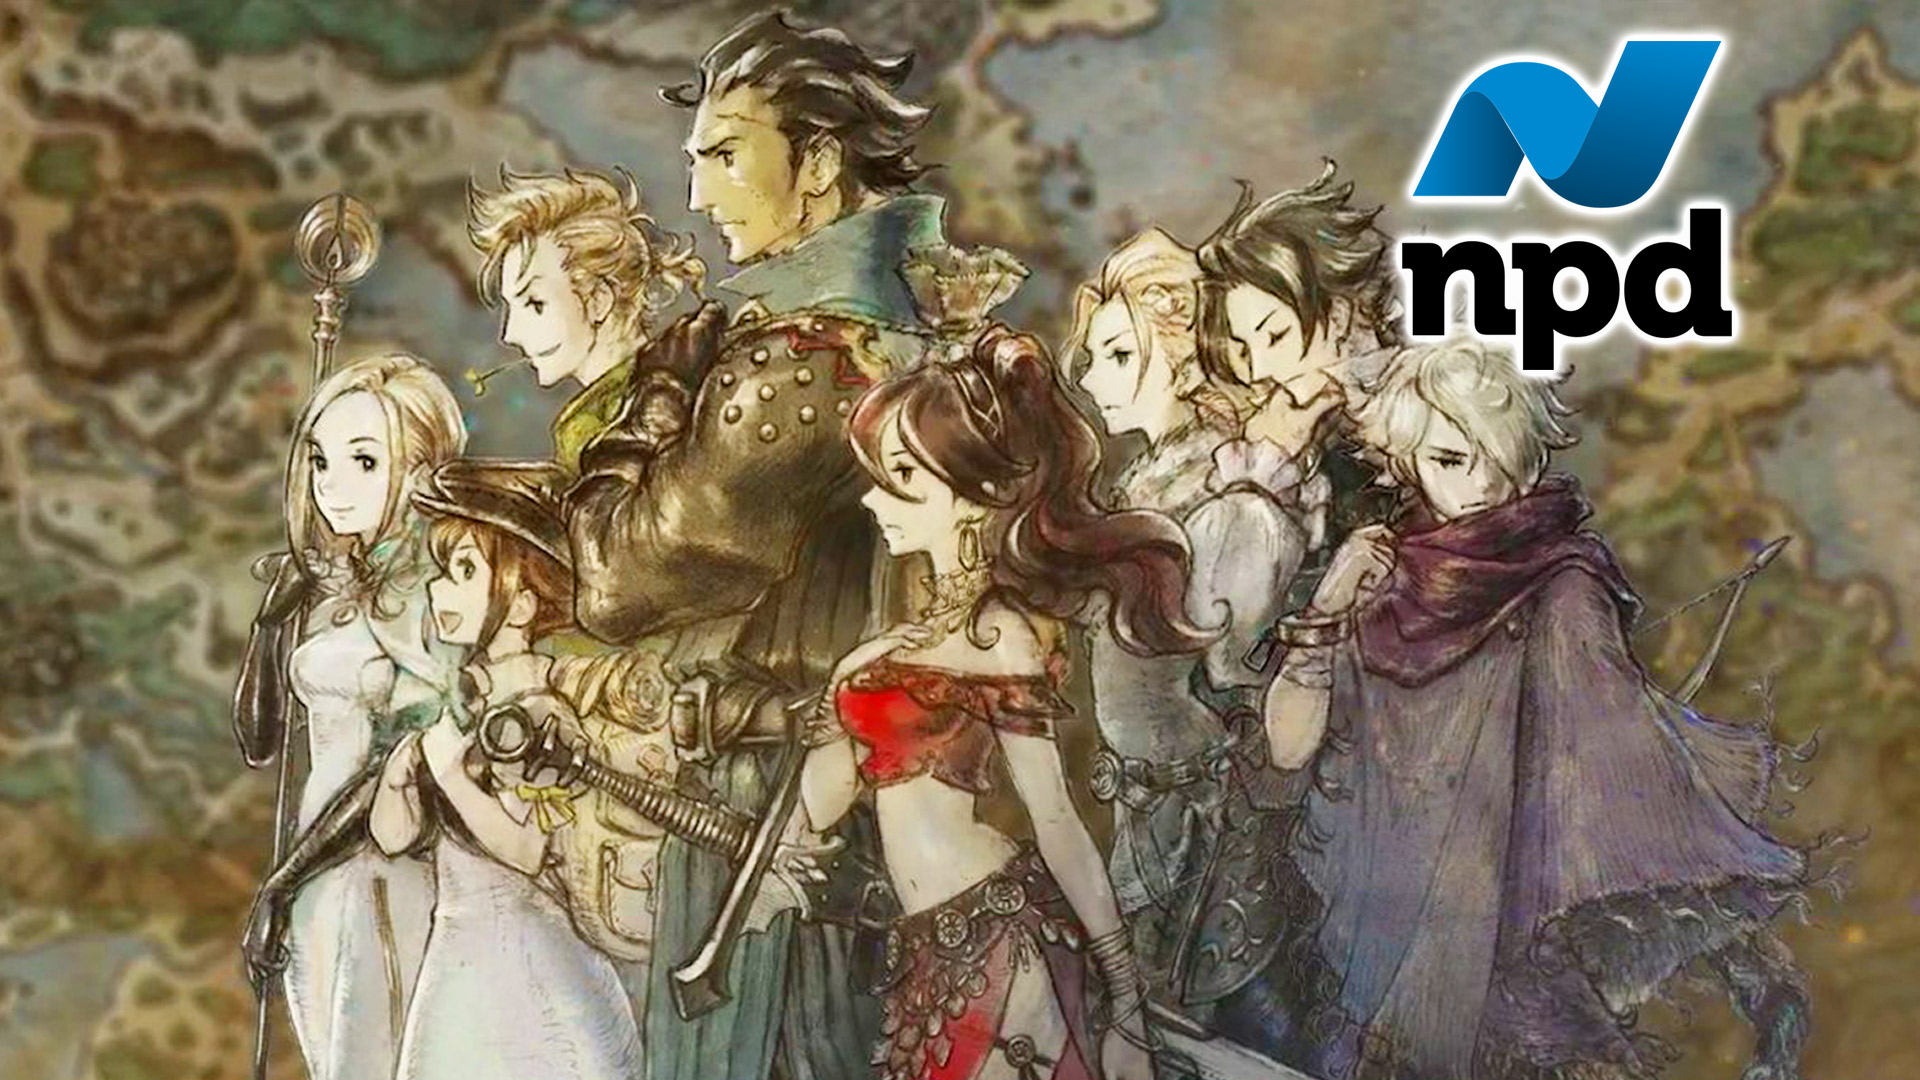 NPD July 2018 Gaming Estimates and Analysis: Follow the Octopath